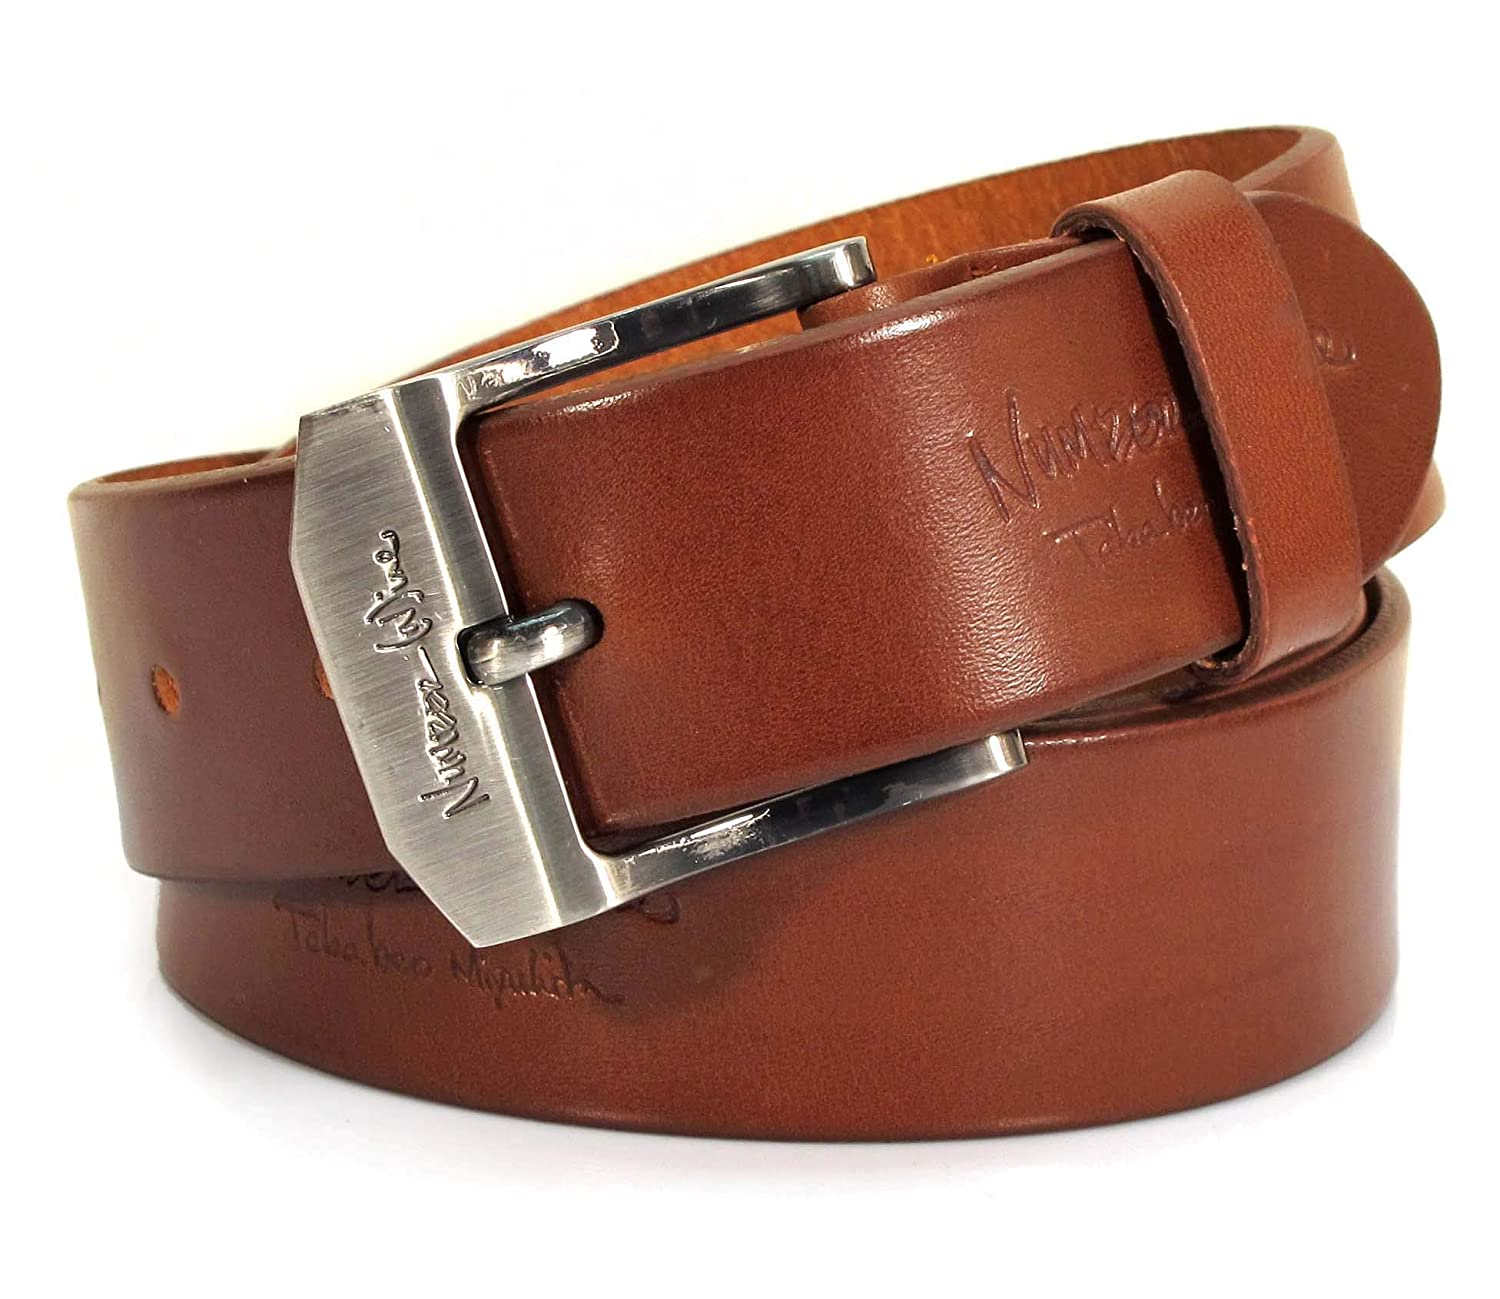 Womens Real Genuine Leather Belt Black Brown White 1.5 Wide S-XL Casual Jeans TW2